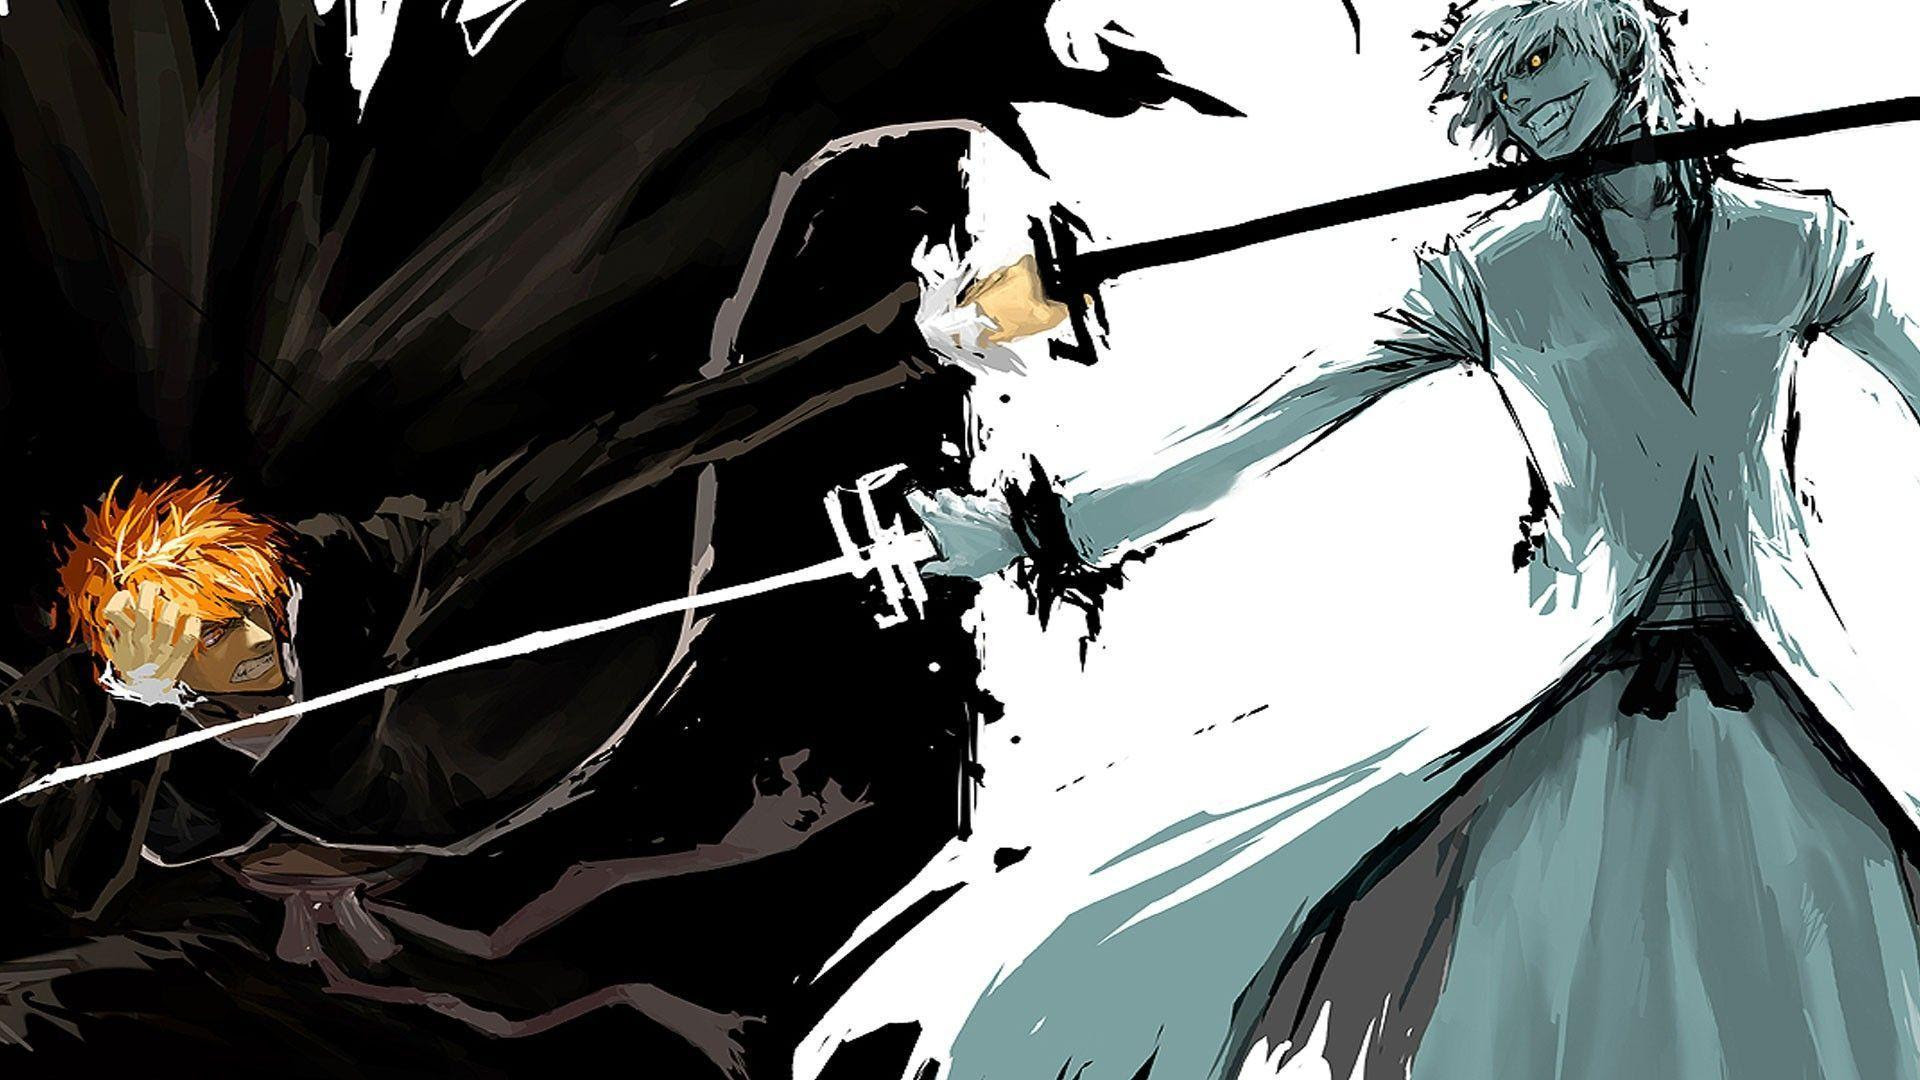 HD Anime Wallpapers - Wallpaper Cave